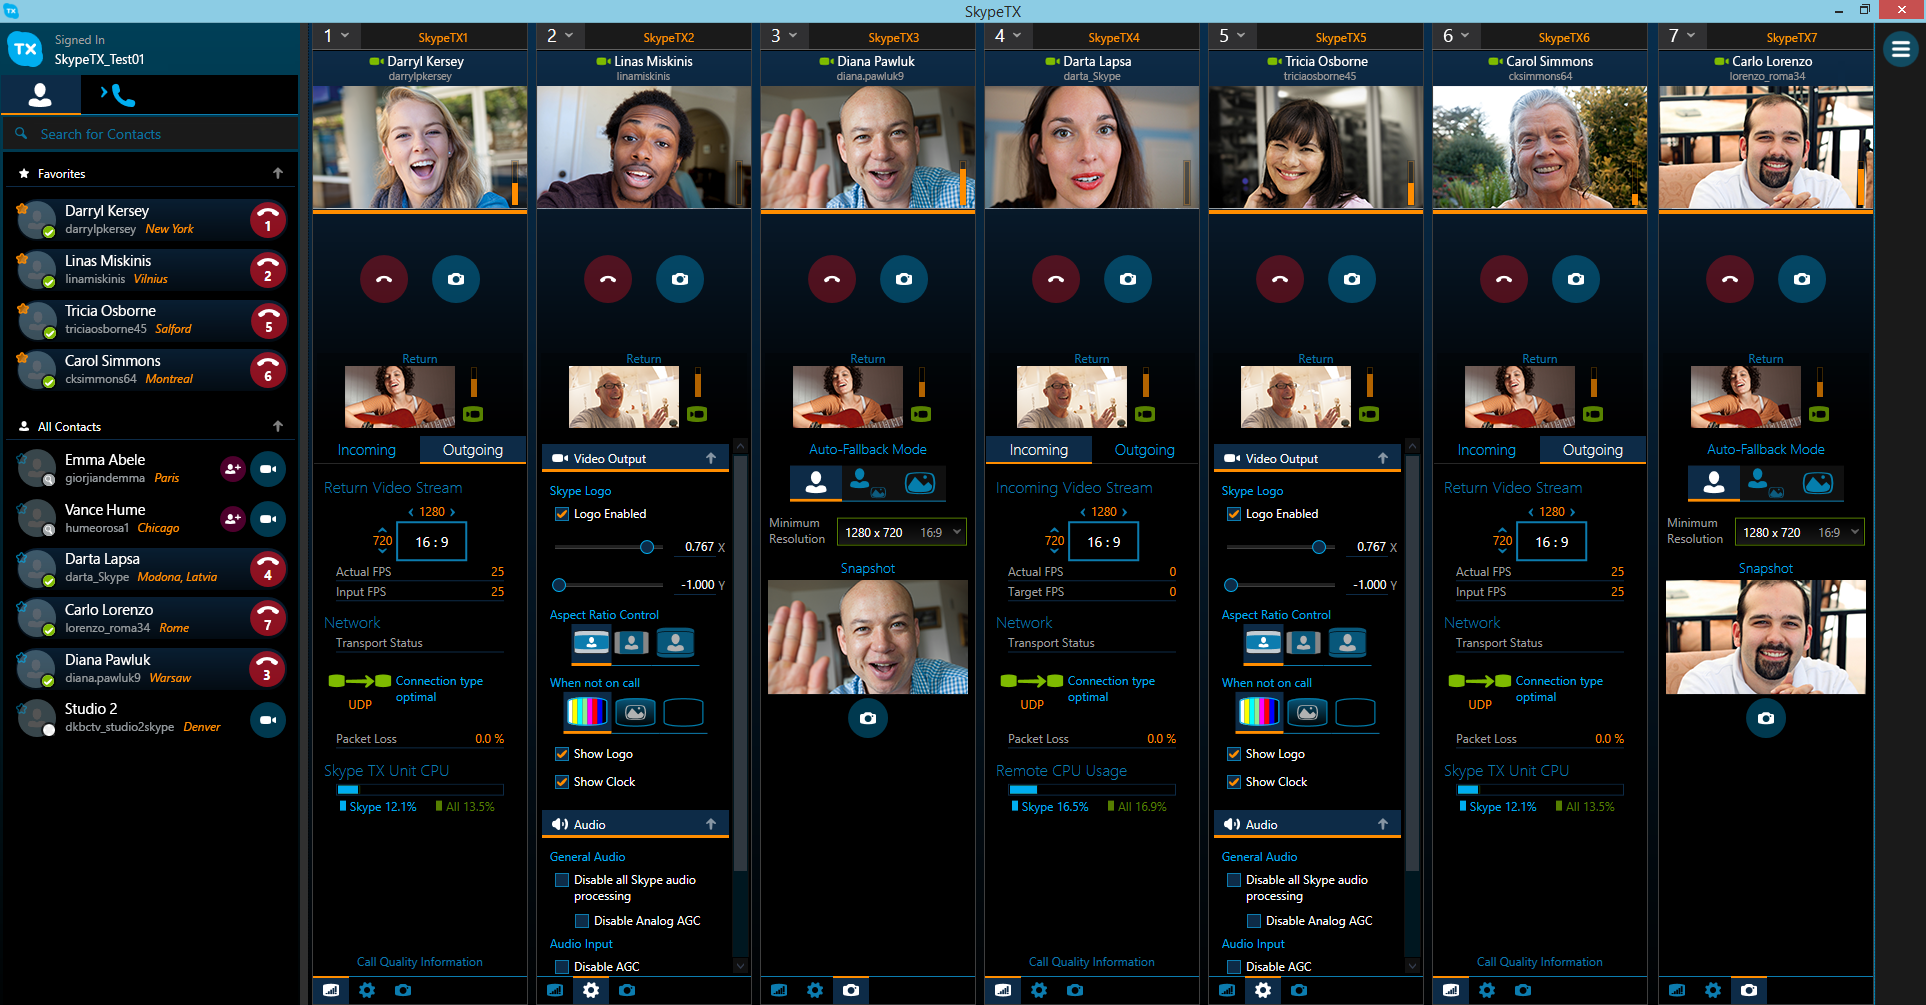 Skype TX controller user interface